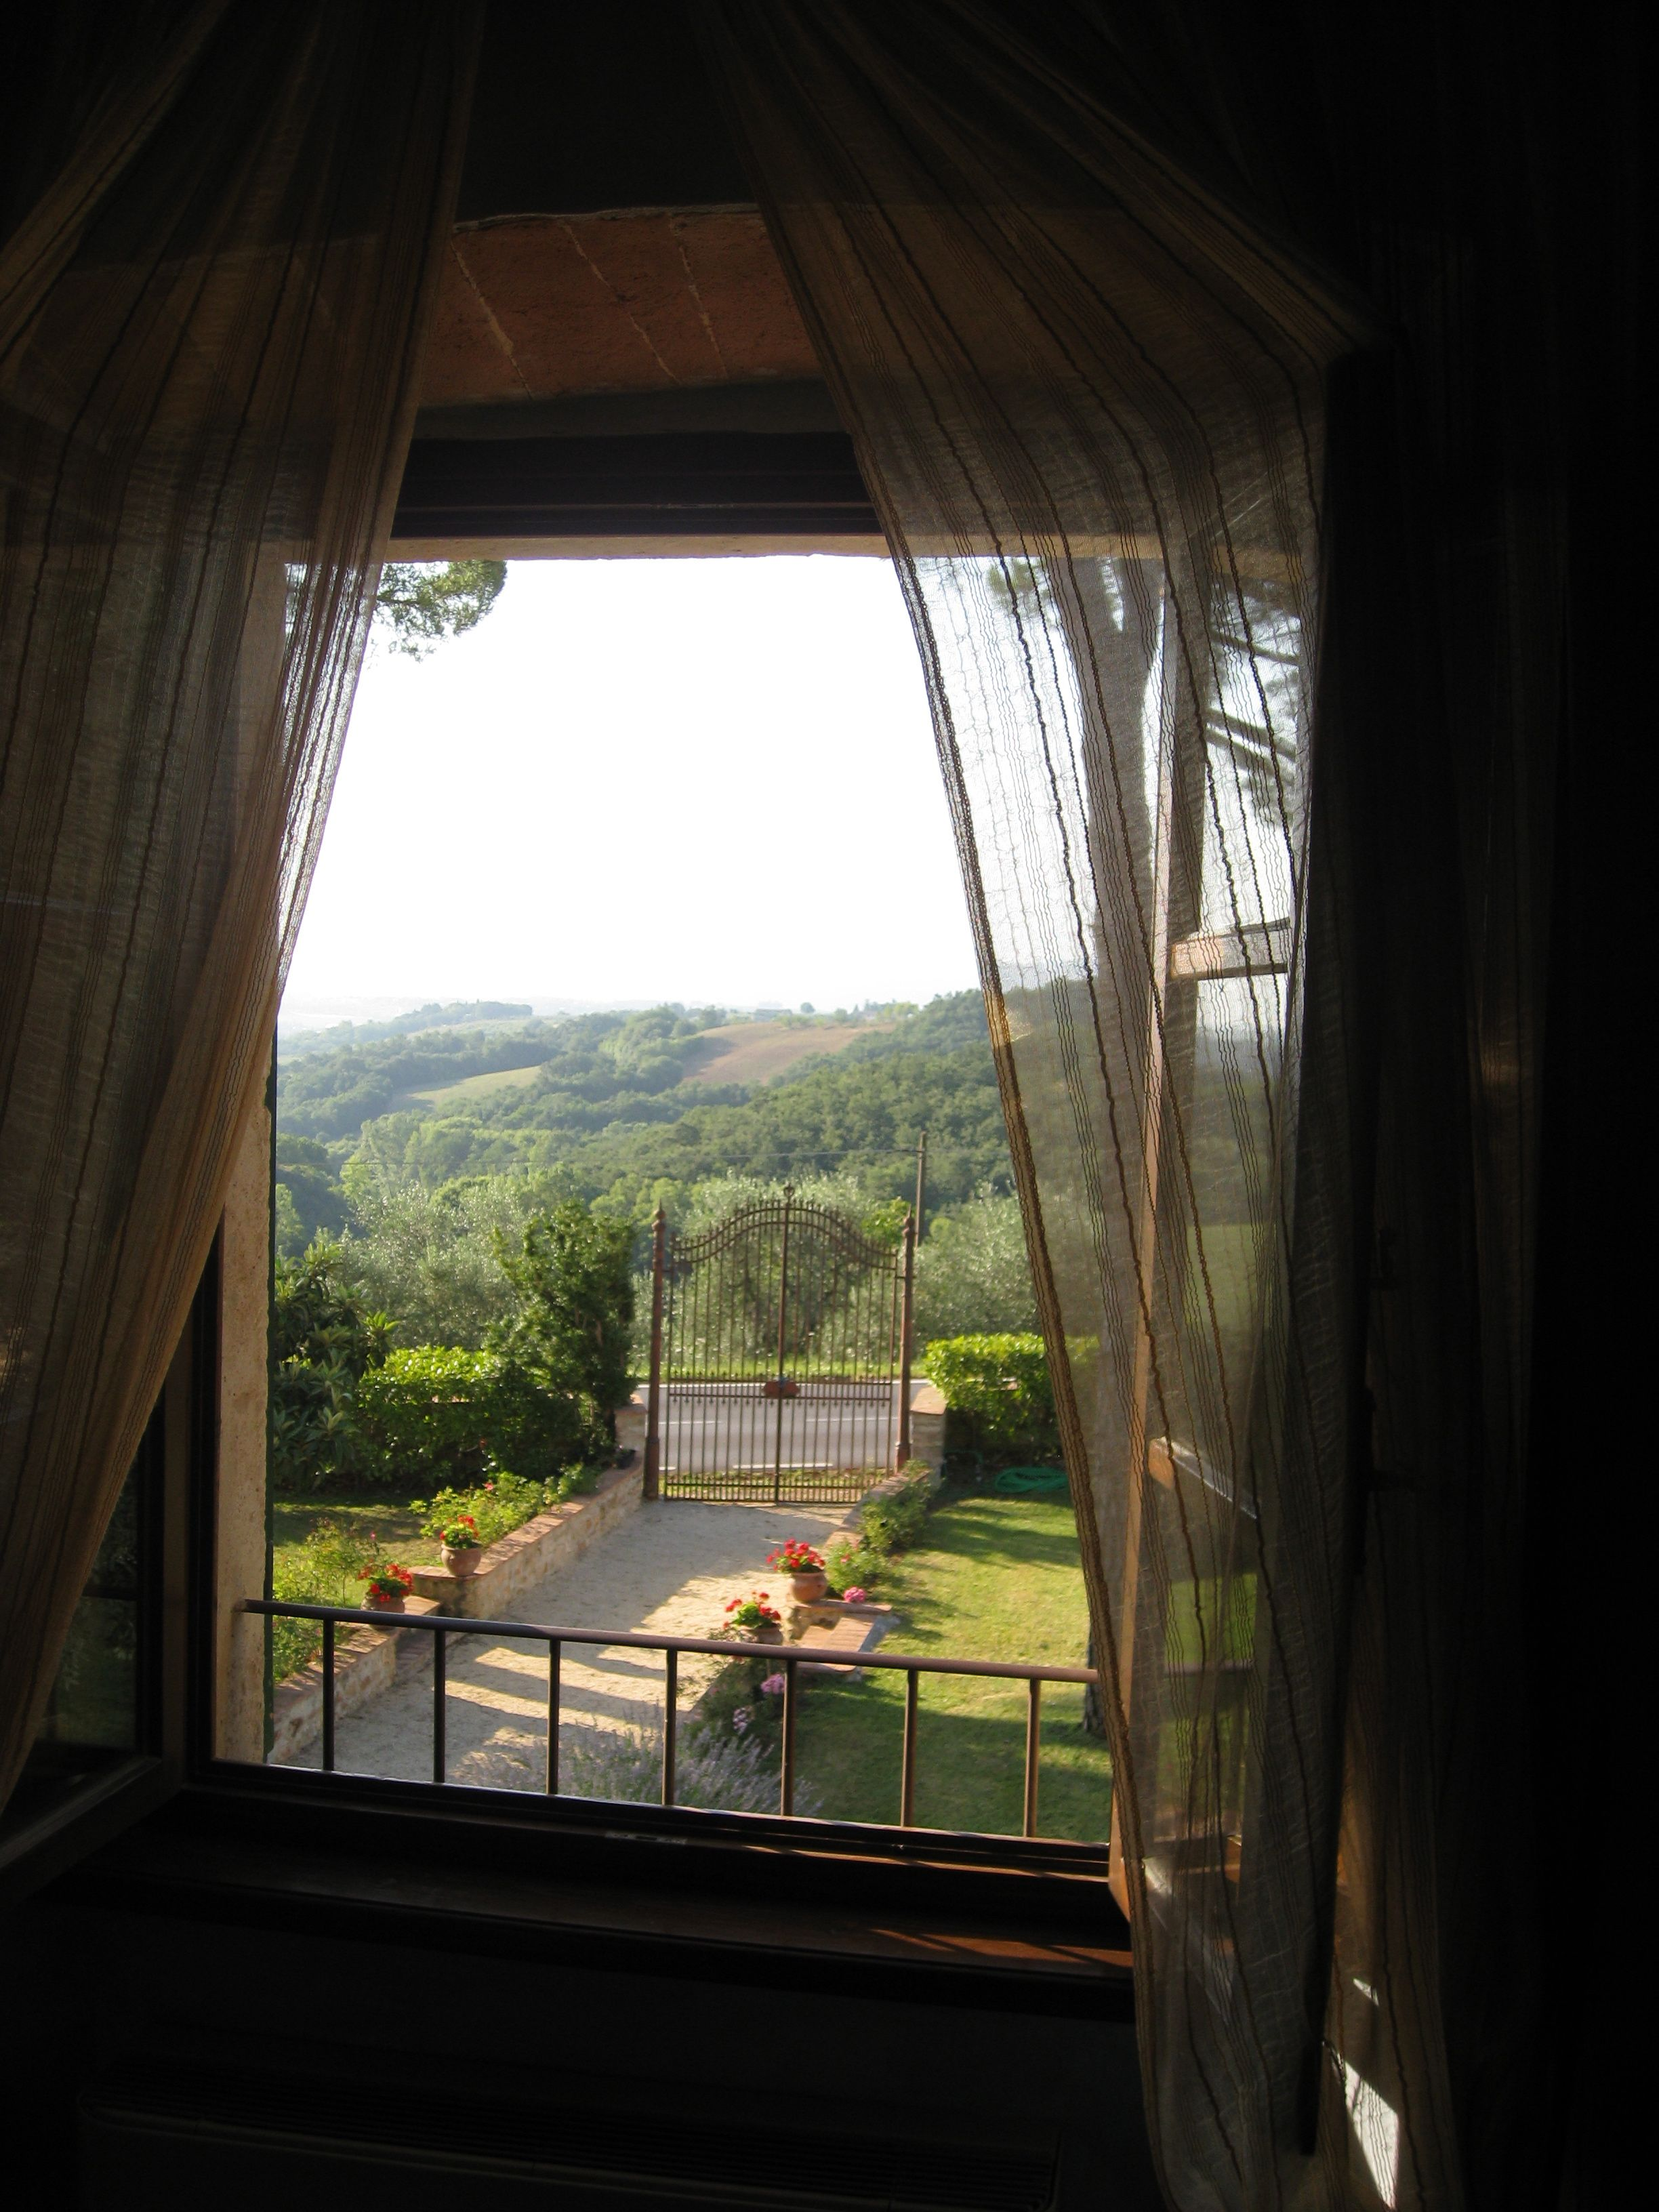 View from our room, Chianti region of Italy.